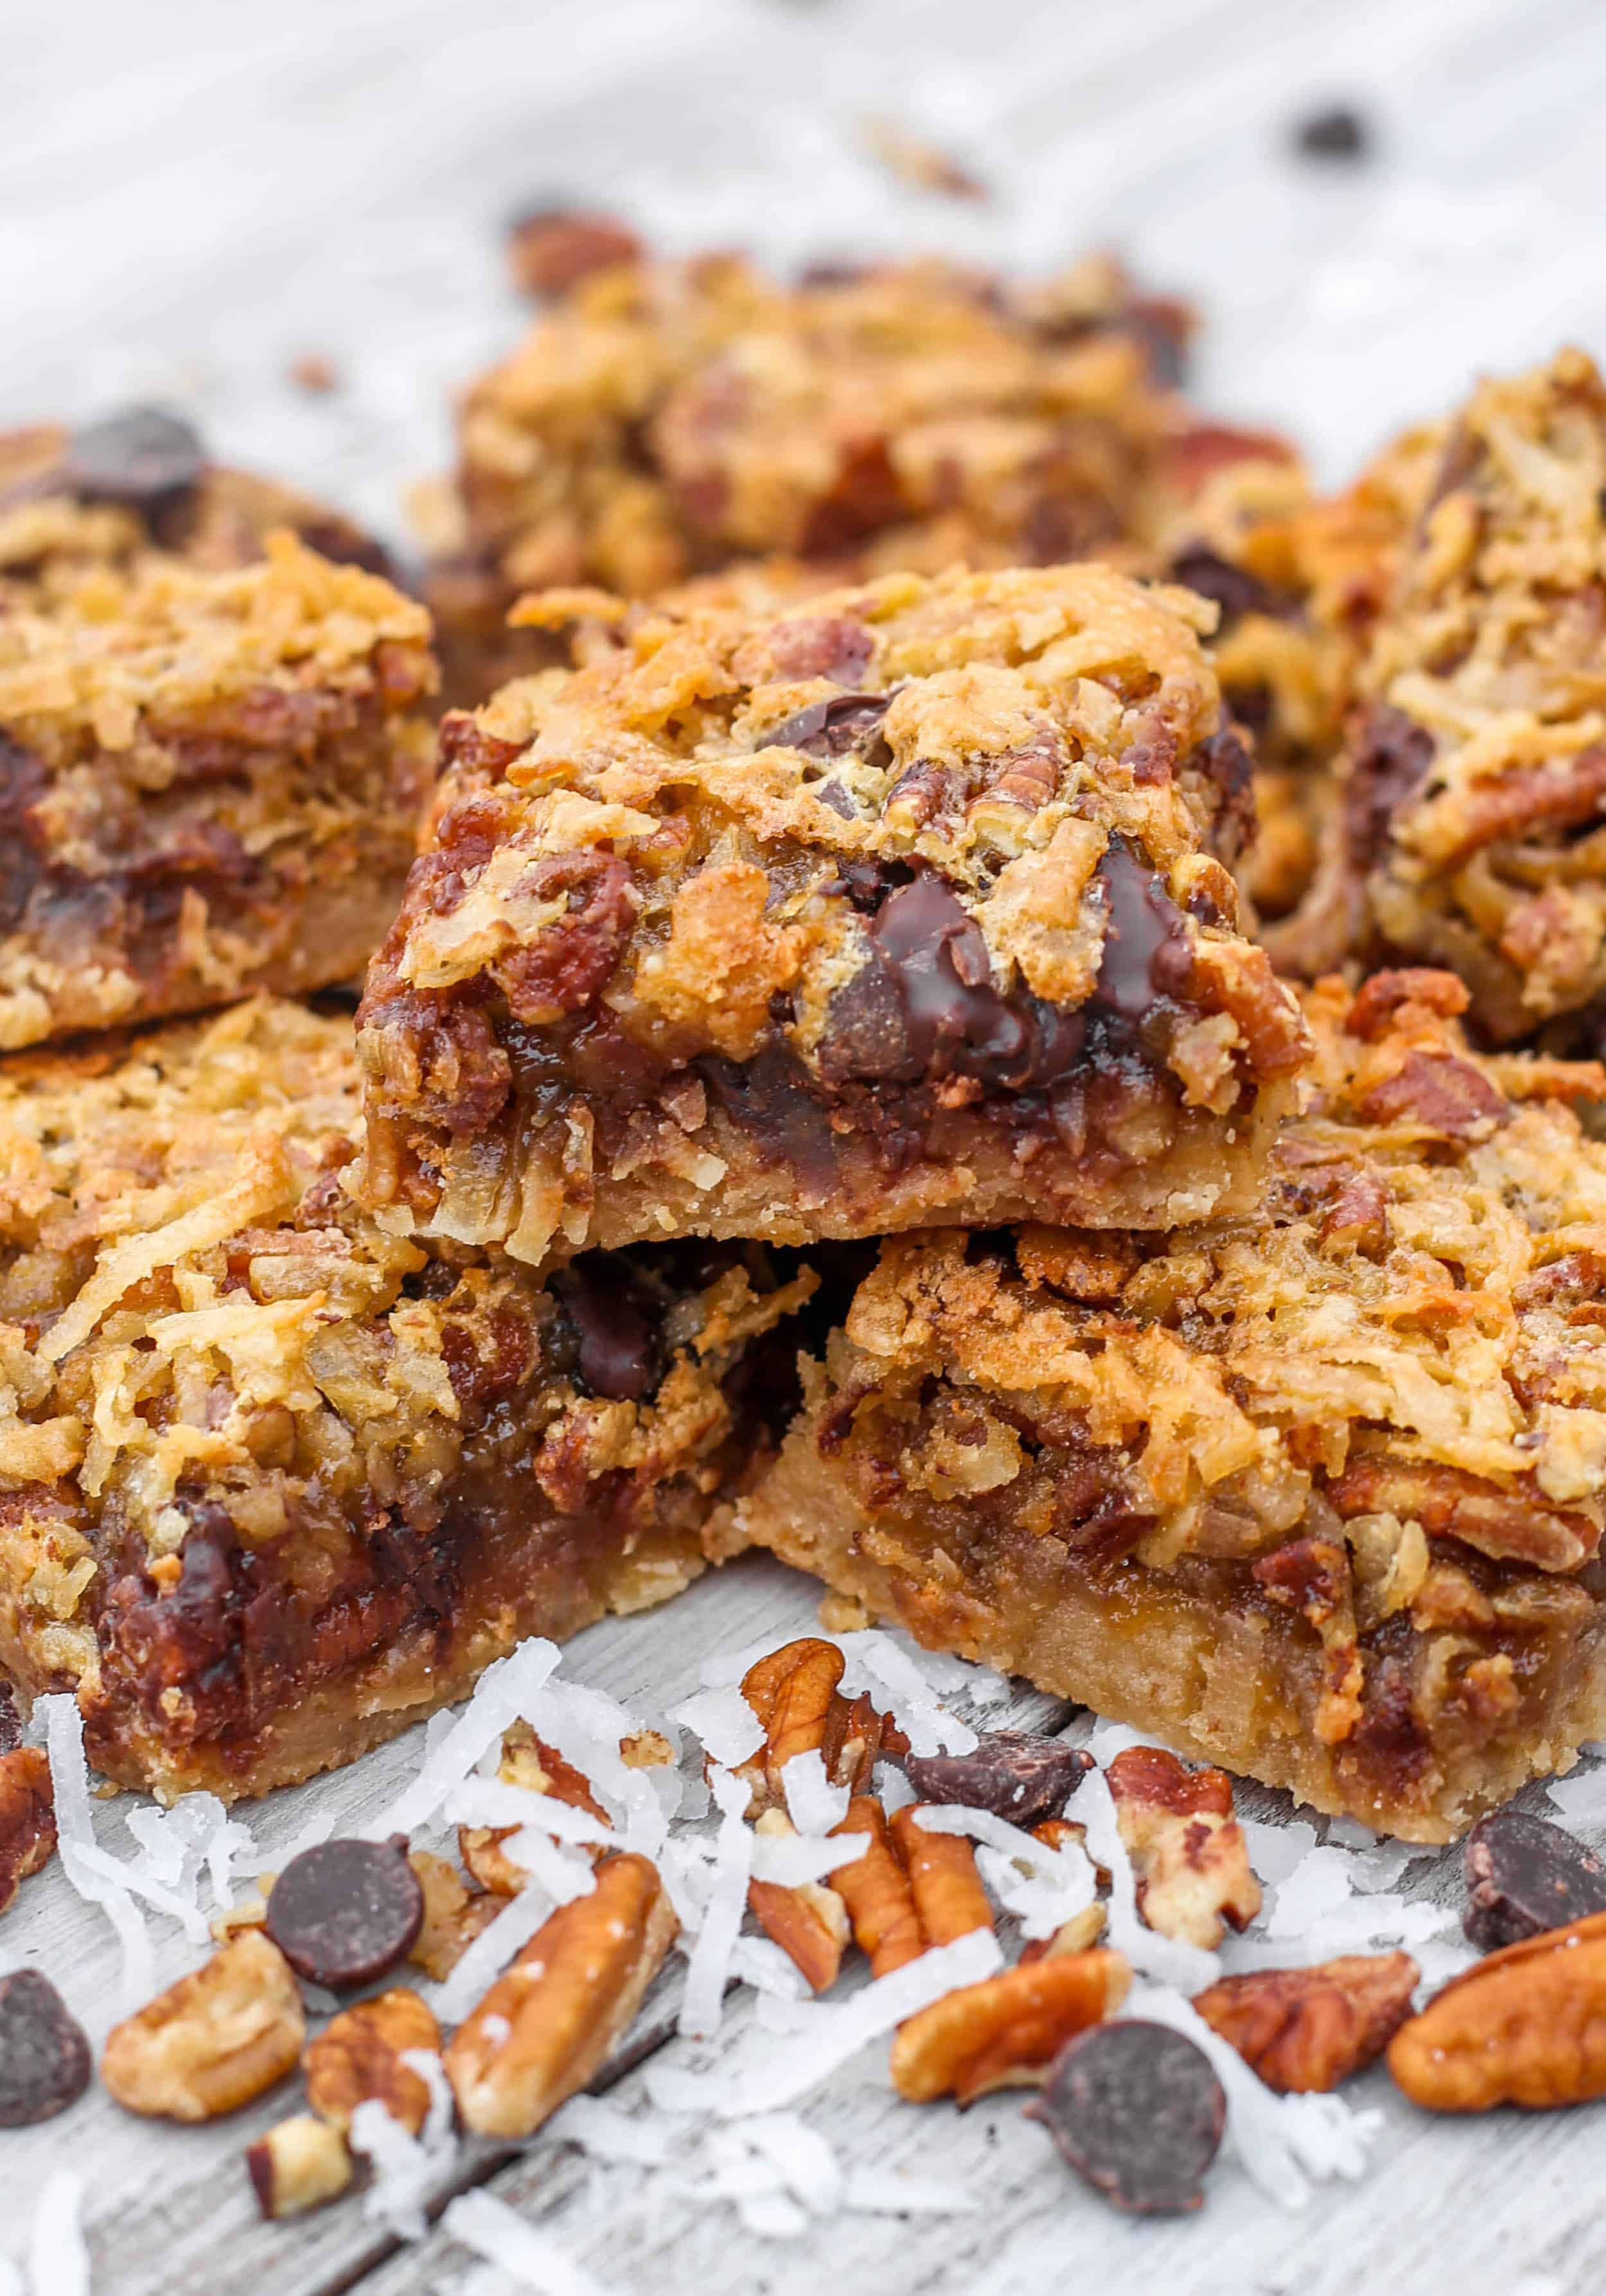 Coconut Dream Bars - These soft and chewy Coconut Dream Bars are super easy, perfectly chewy and chock full of coconut, pecans, dark chocolate, and brown sugar.